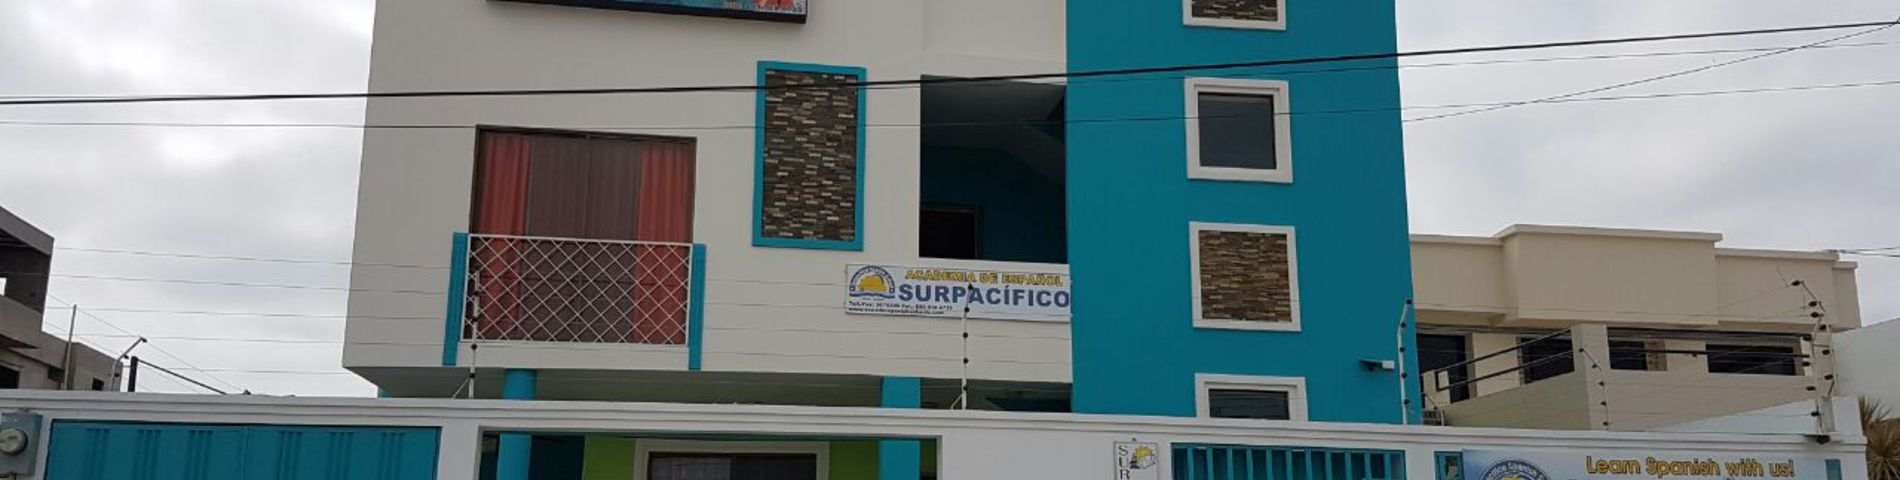 Academia Surpacifico picture 1